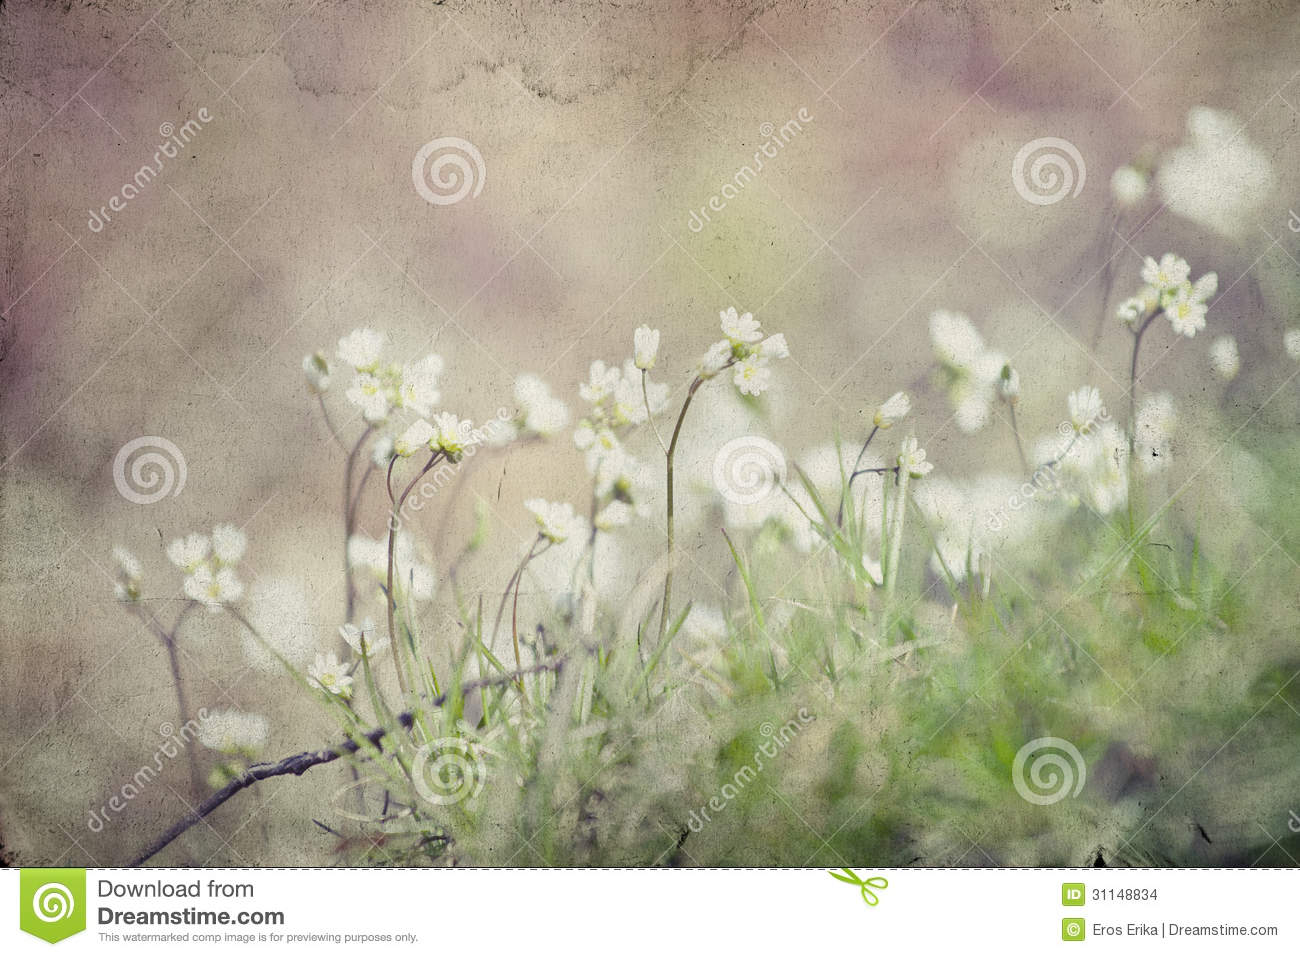 Vintage Photo Of Flower Field Stock Images - Image: 31148834